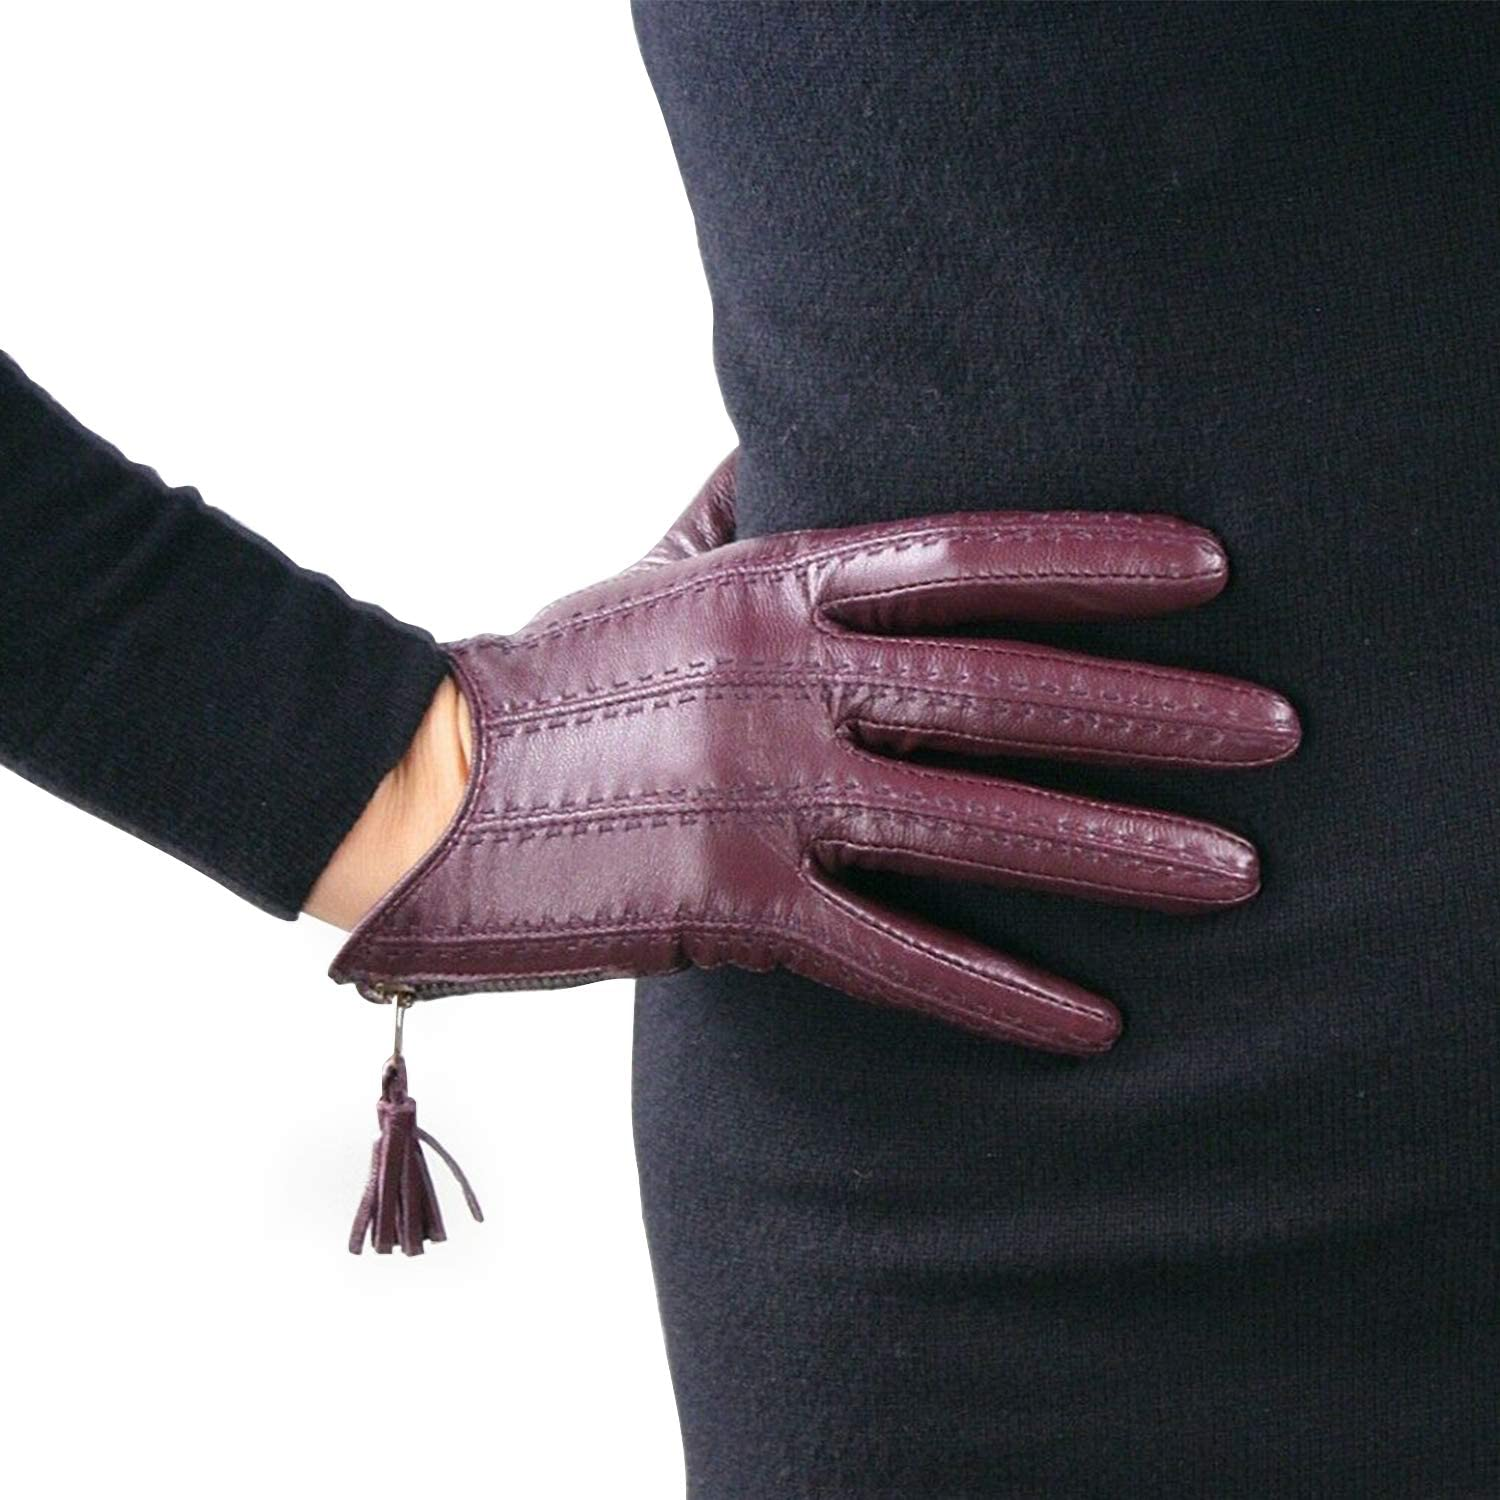 DooWay Short Black Real Leather Driving Gloves Touchscreen Imported Goatskin Leather Tassel Zipper Winter Warm Gloves,size M